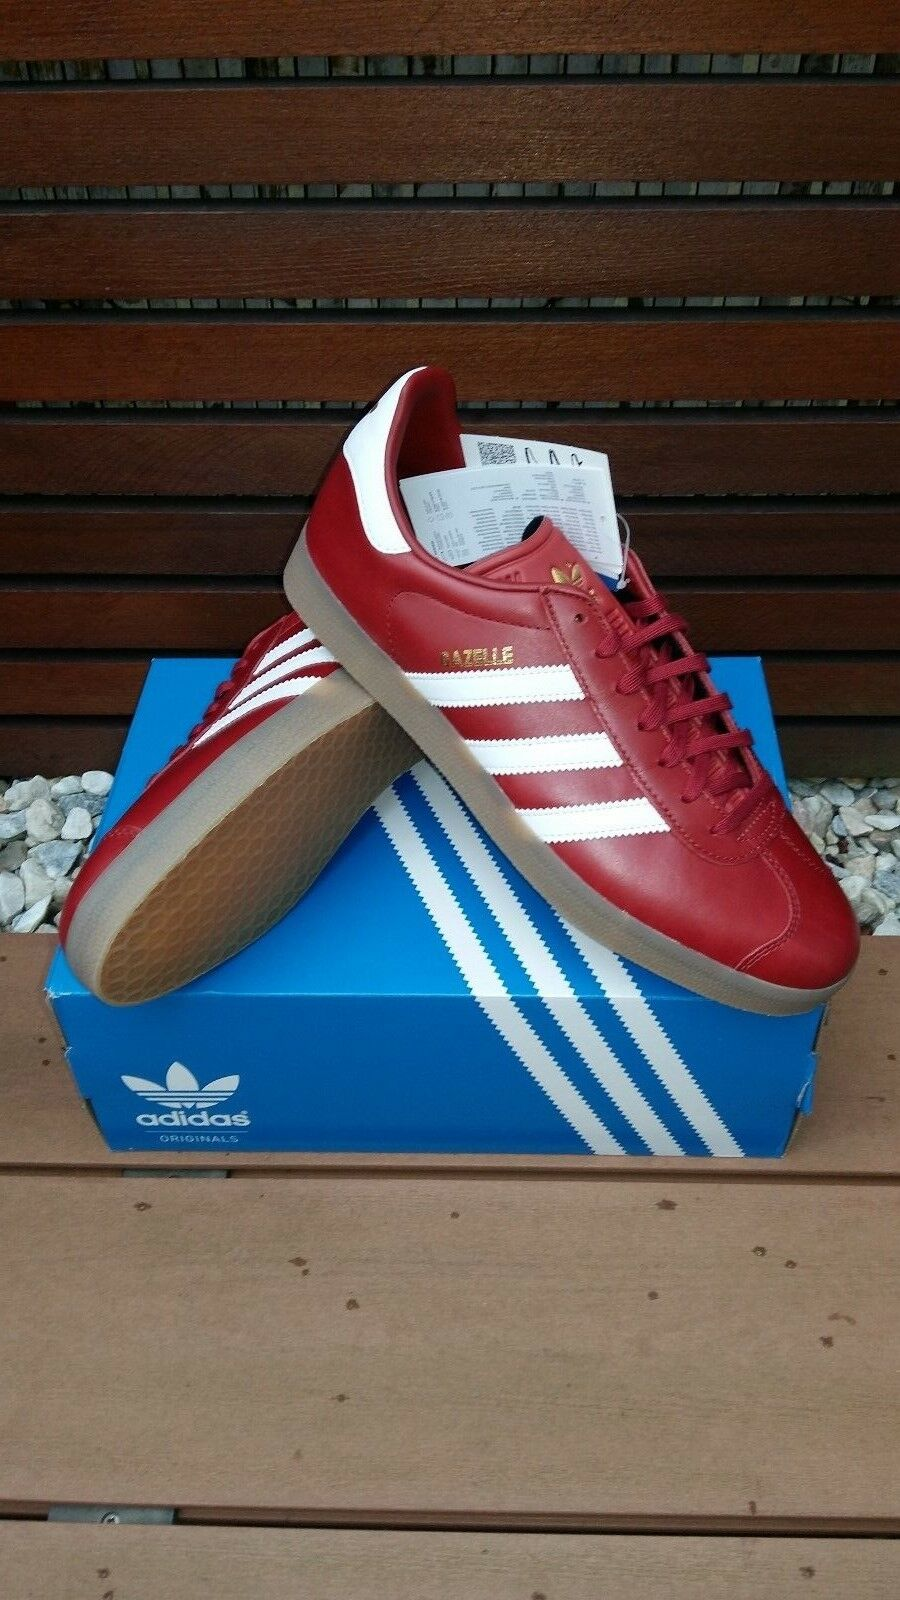 Originals 44 Adidas Gazelle Classics.. 100% Genuino Zapatillas Reino Unido 44 Originals 2/3 euros fbf89b